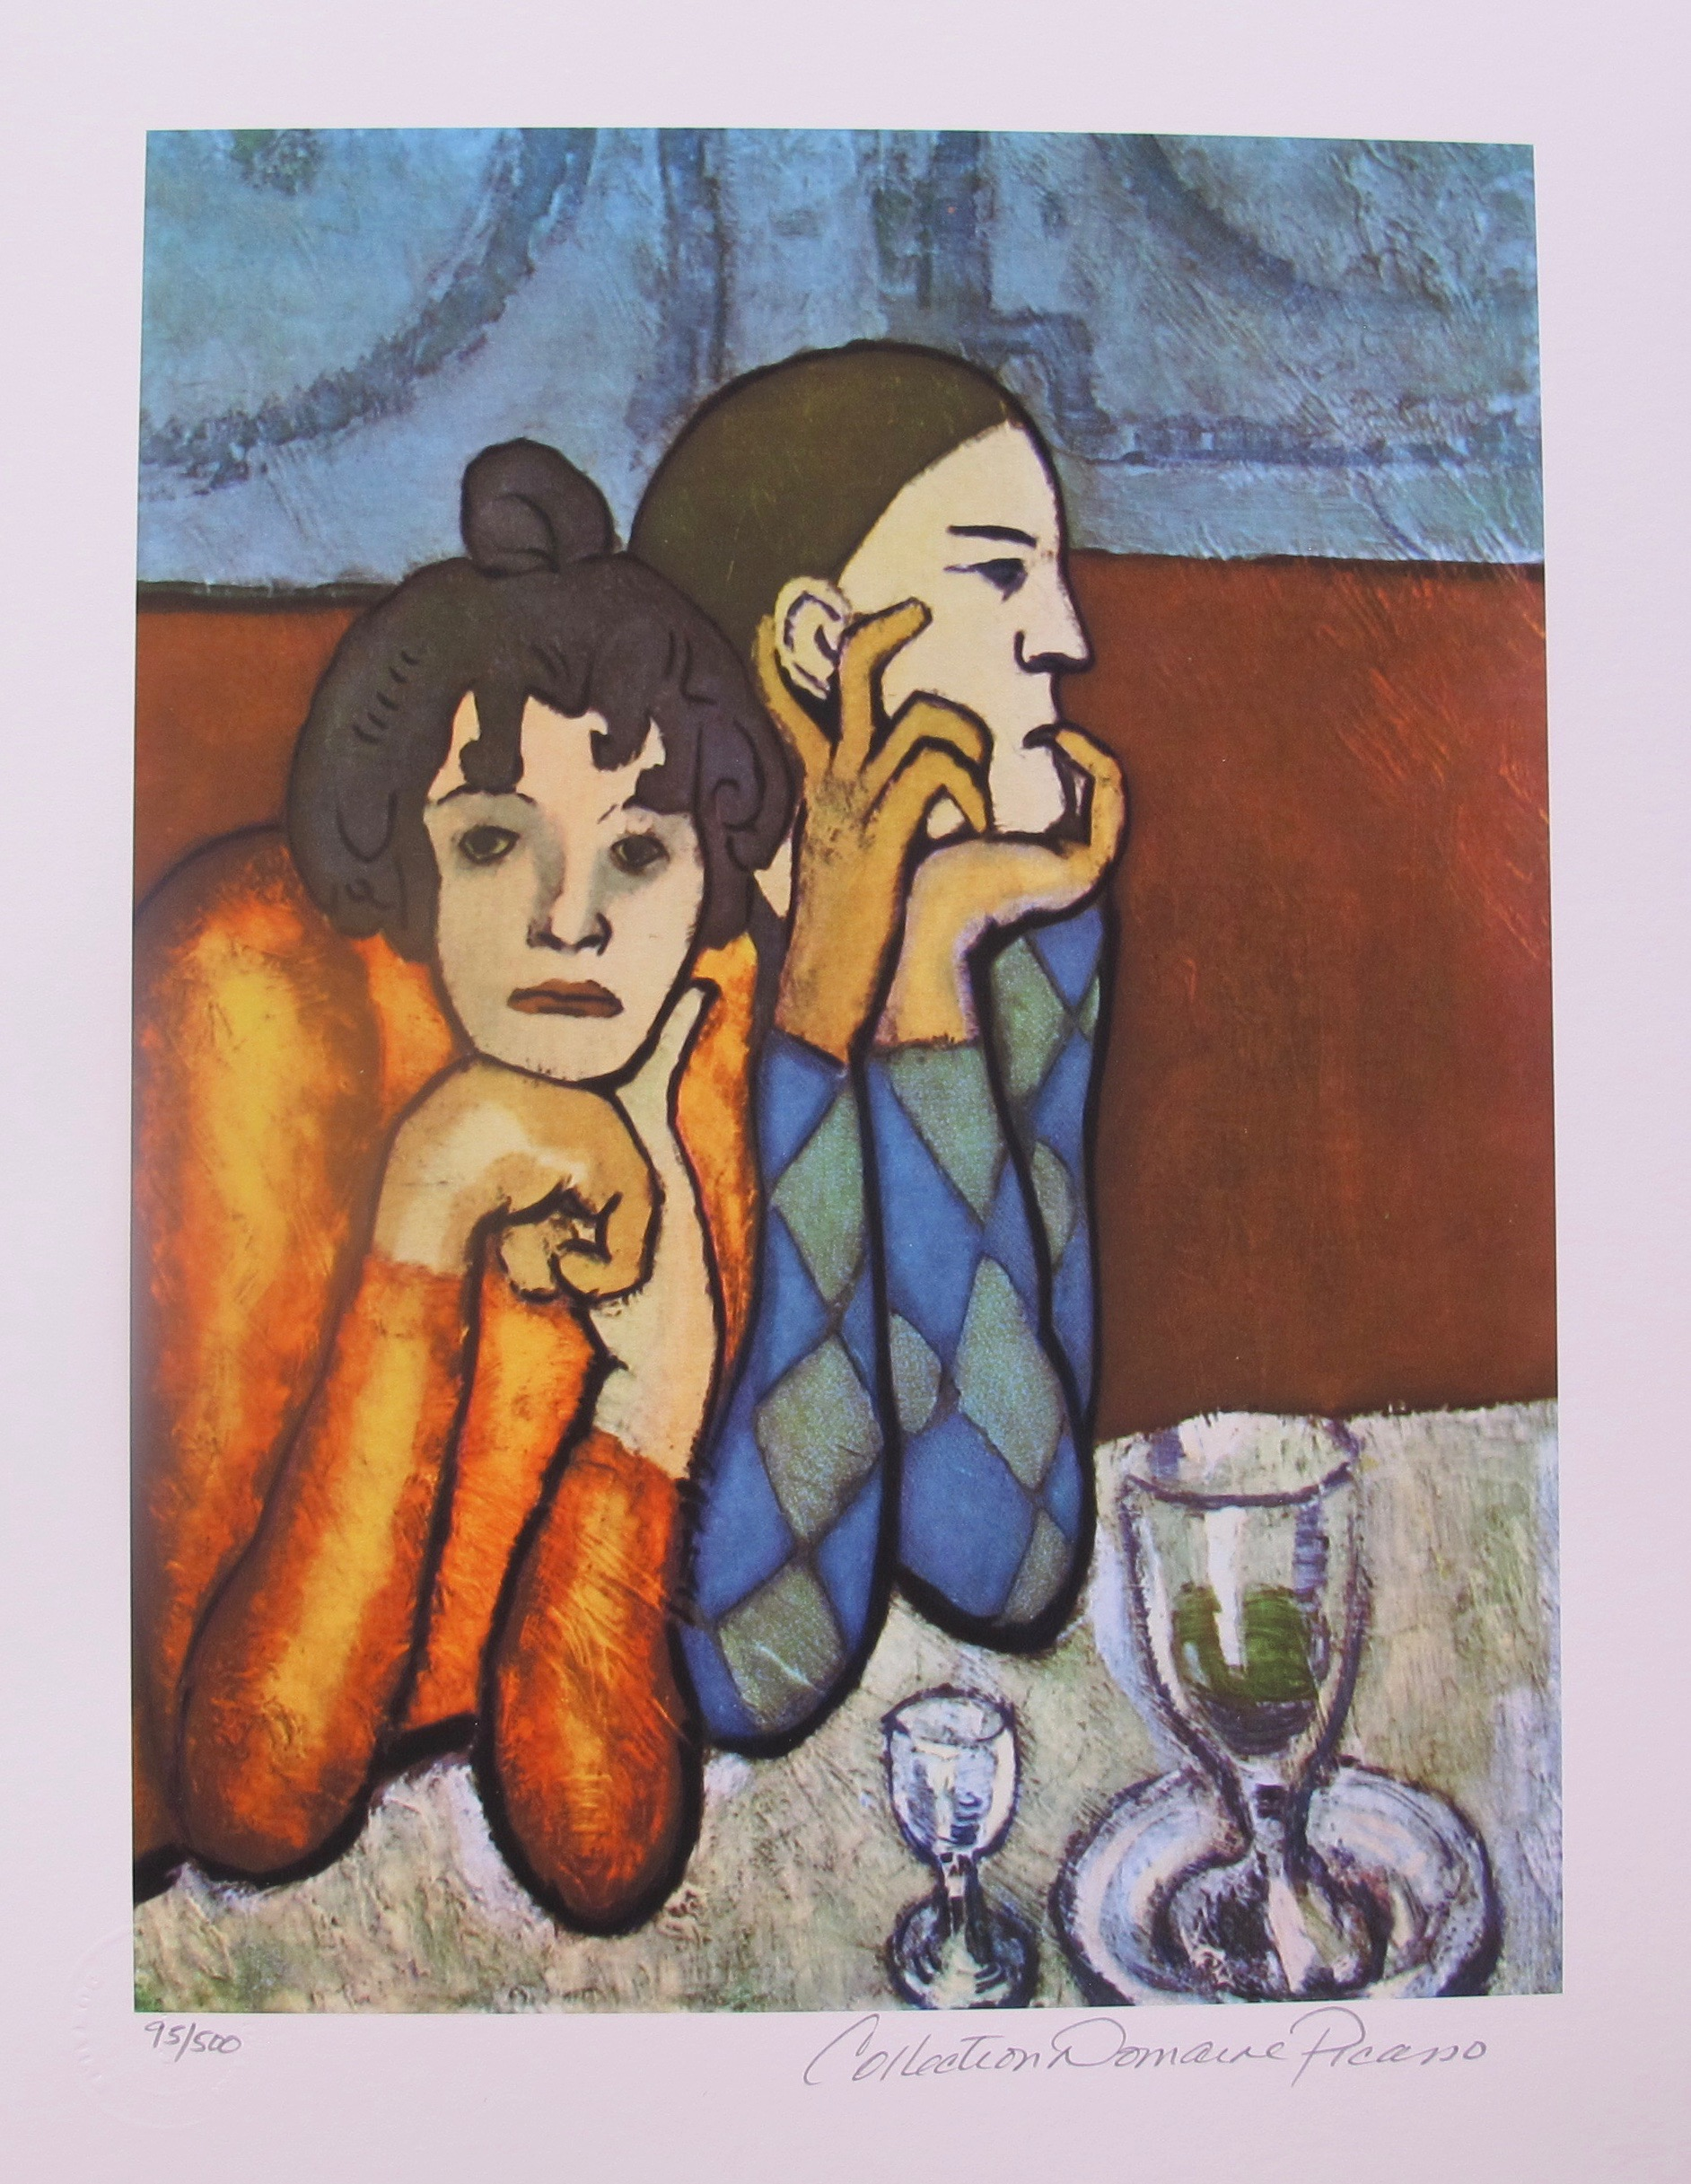 Pablo Picasso PAUL AS HARLEQUIN AND HIS COMPANION Estate Signed Limited Edition Giclee